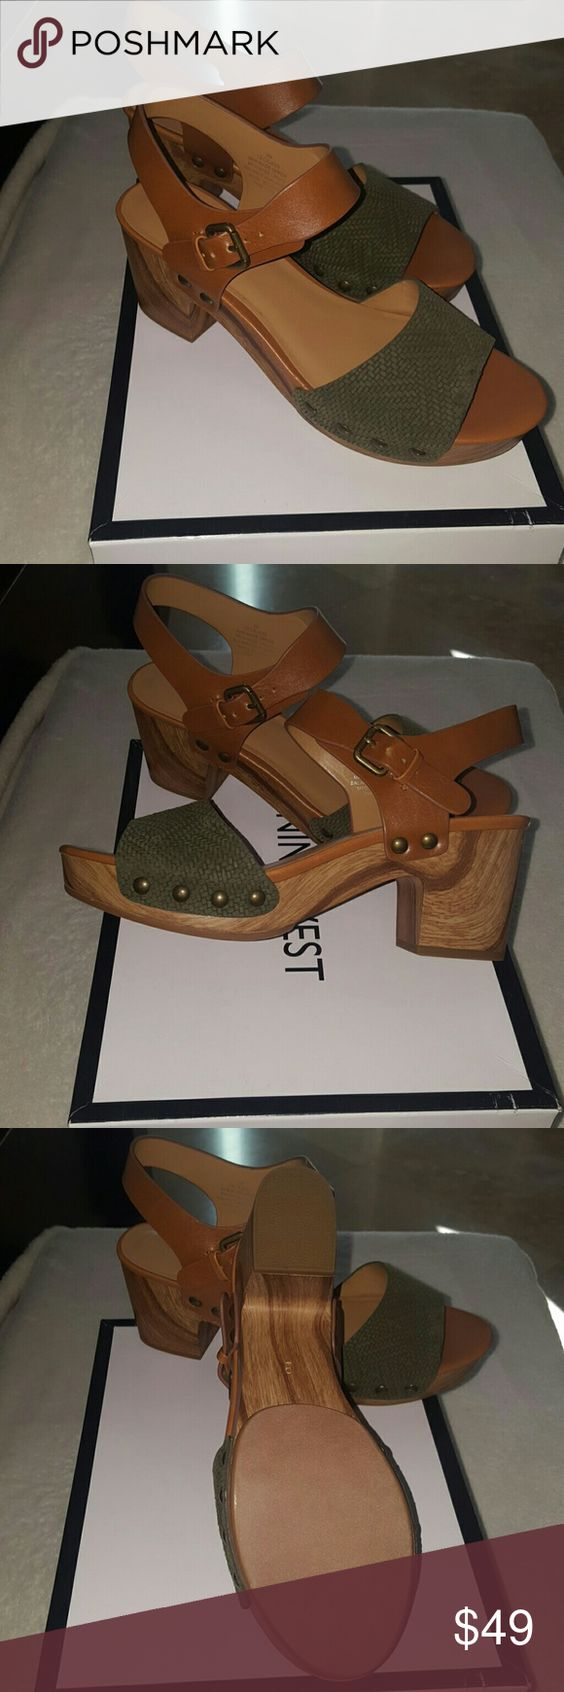 Nine west strapped shoes Army green and camel color heeled shoes Nine West Shoes Platforms